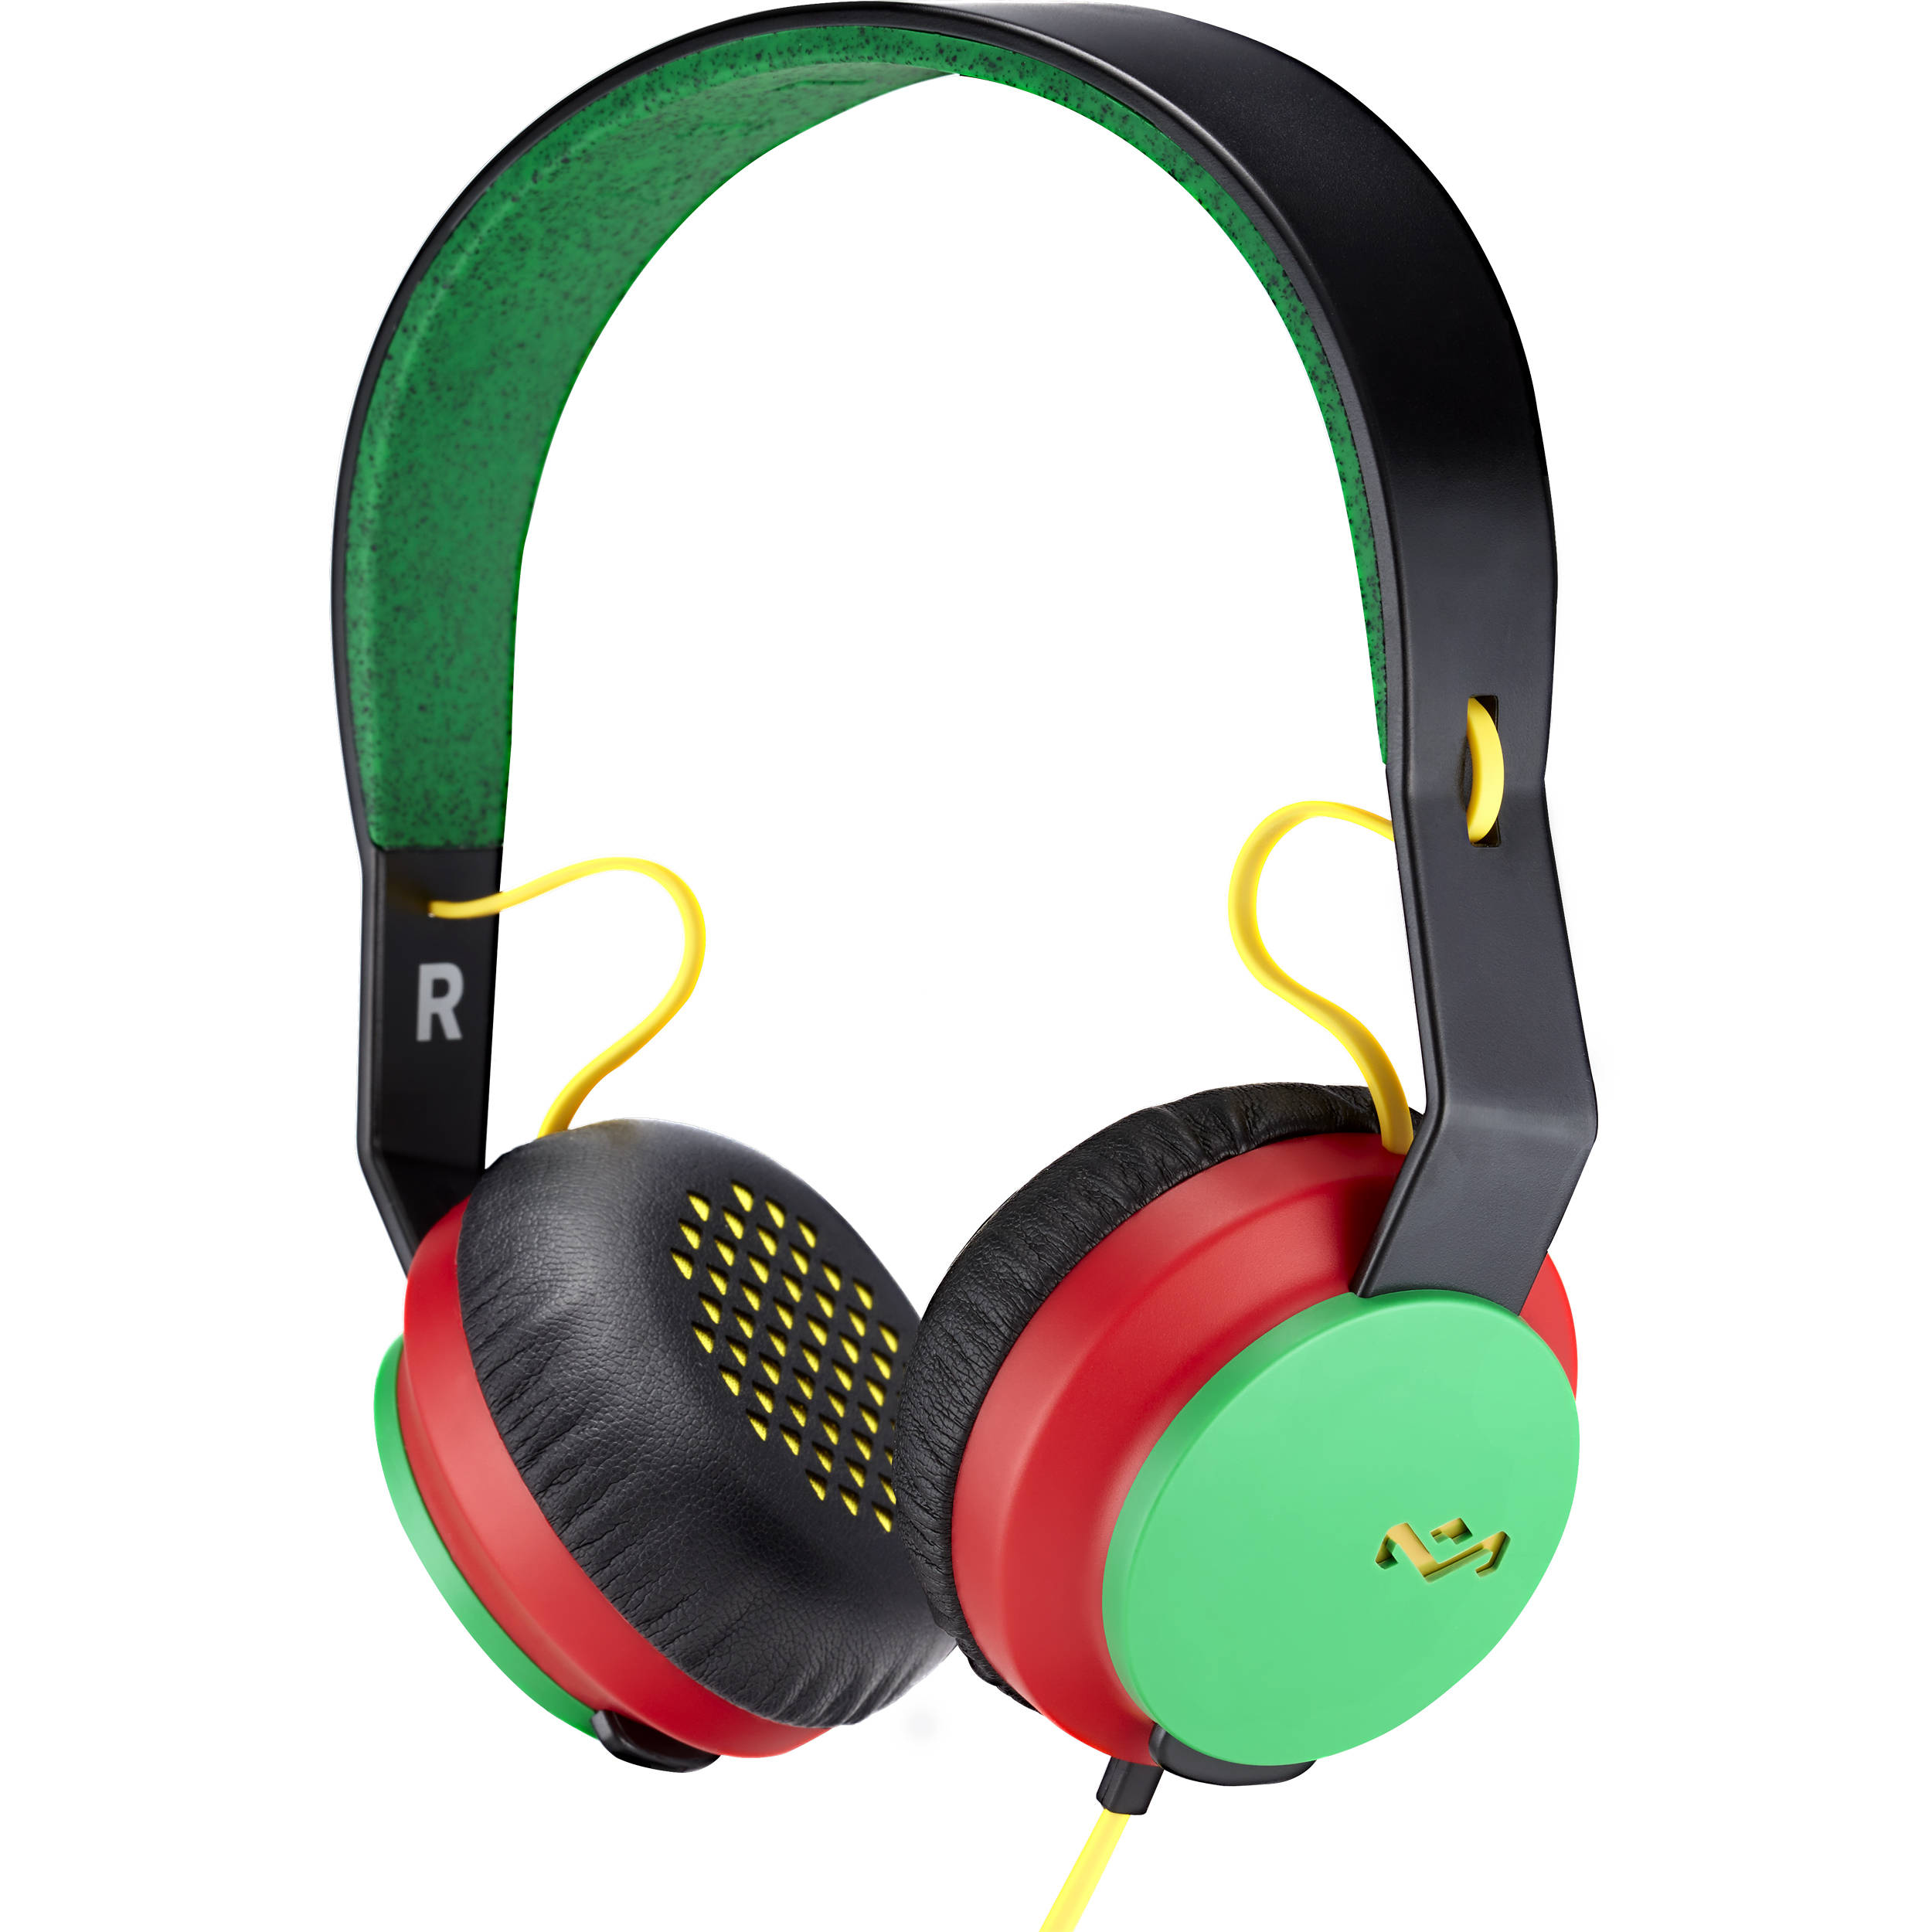 House of Marley EM-JH081 Rebel On-Ear Headphones (Rasta)